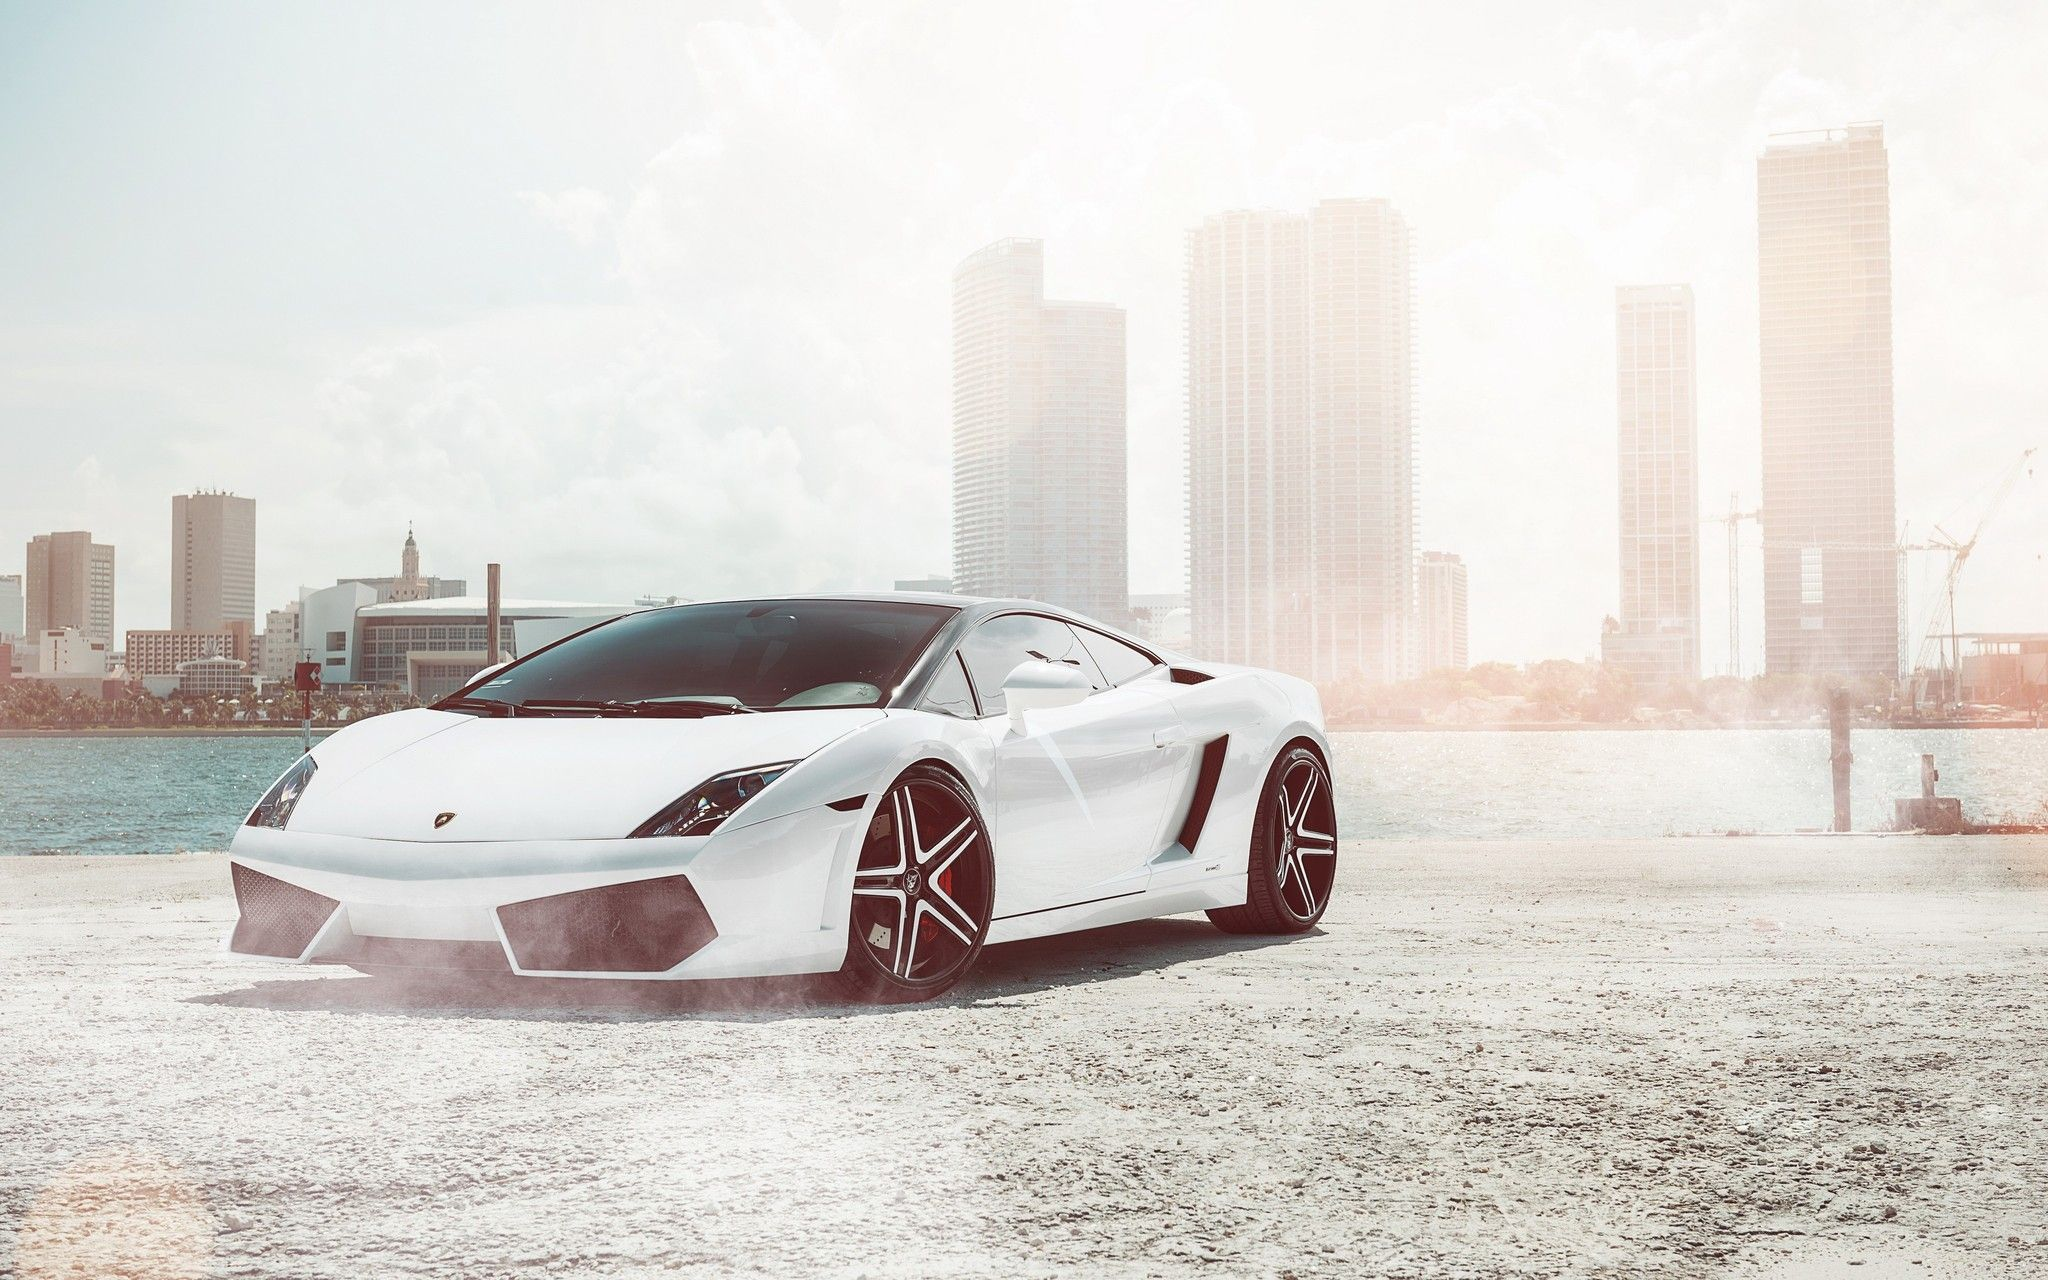 Wallpapers Hd Autos Lamborghini Buscar Con Google